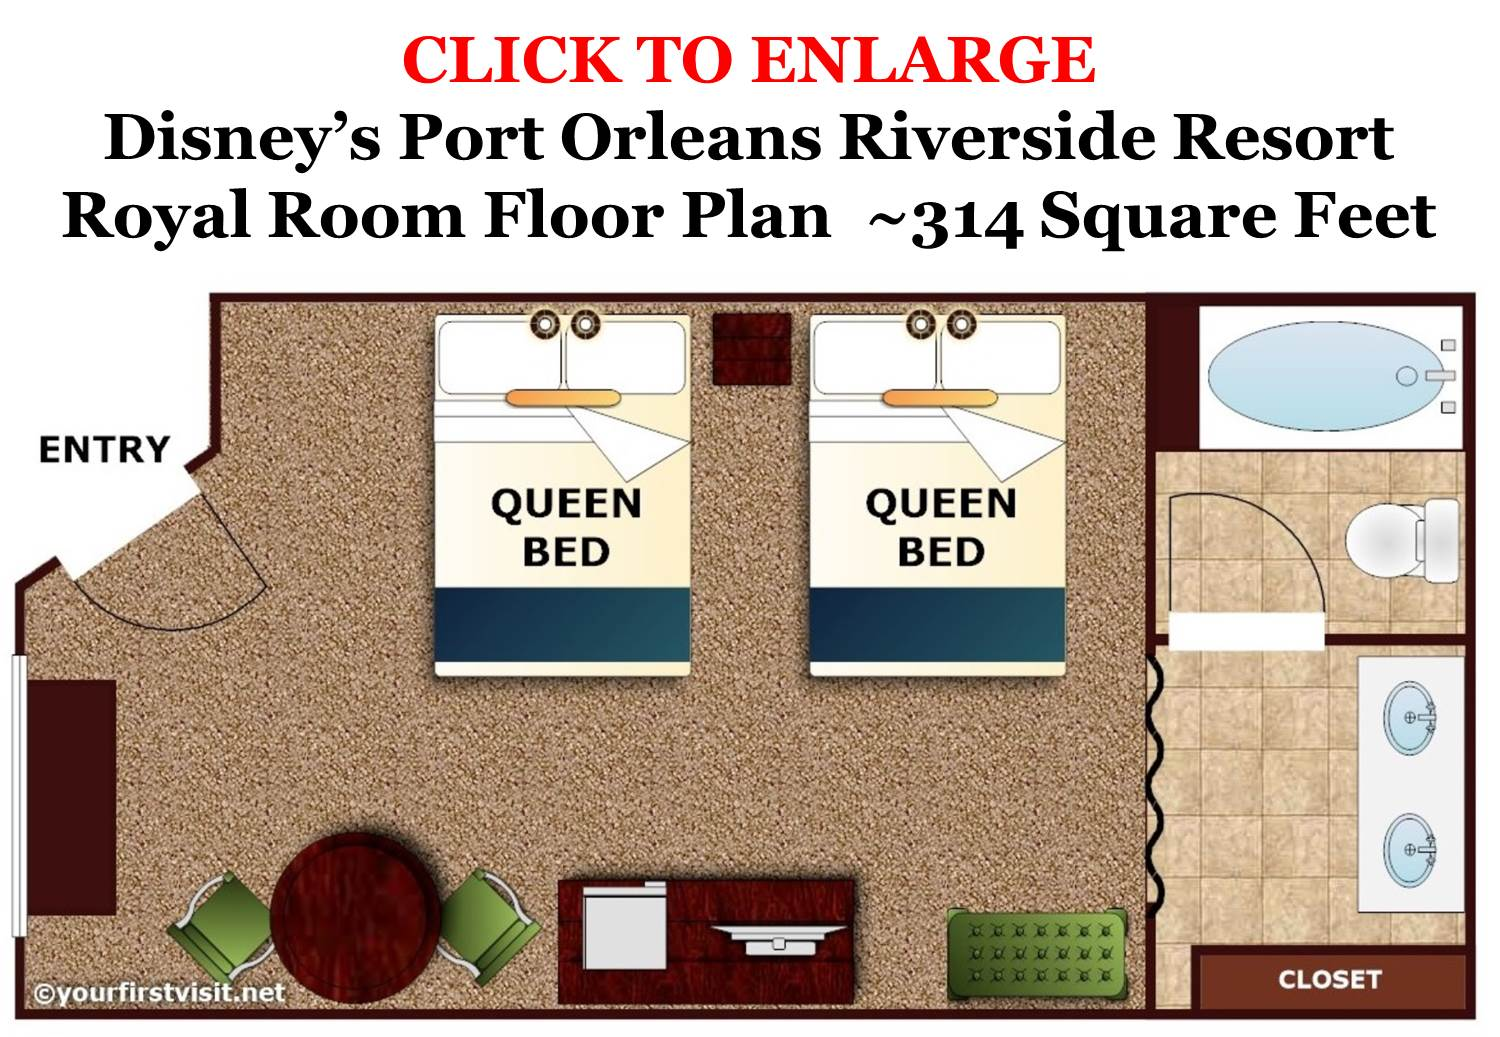 Royal Room Floor Plan Disney's Port Orleans Riverside Resort from yourfirstvisit.net